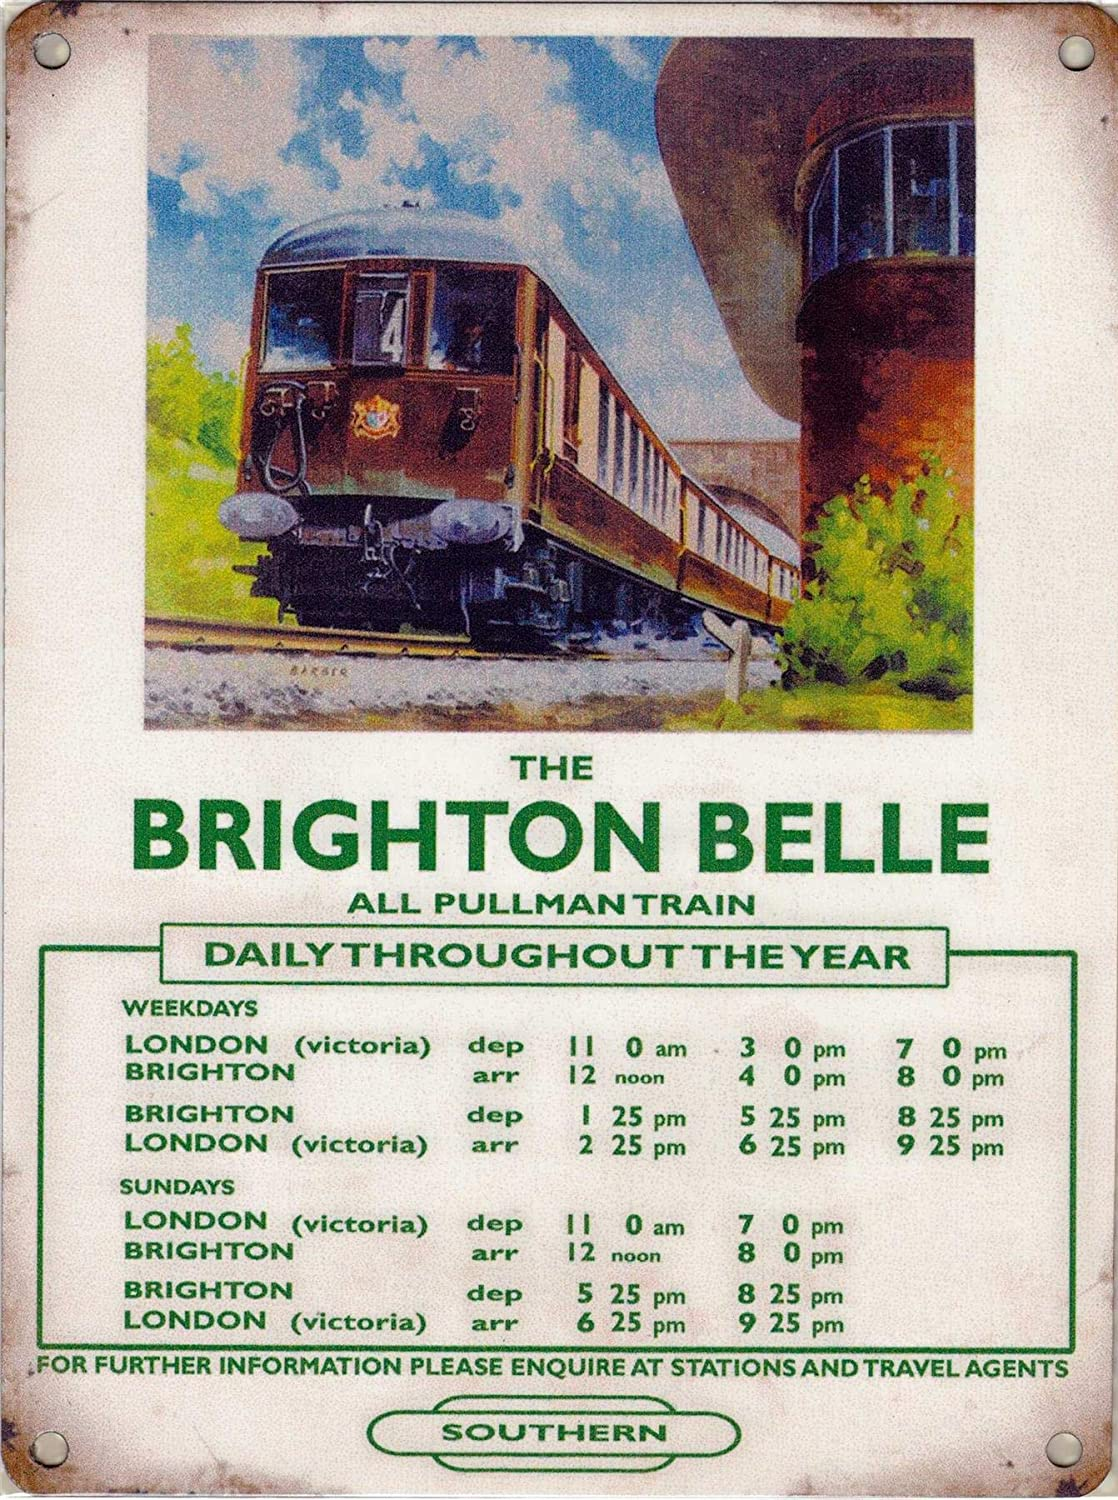 Brighton Belle pullman train metal sign 30x40cm reproduction railway wall plaque